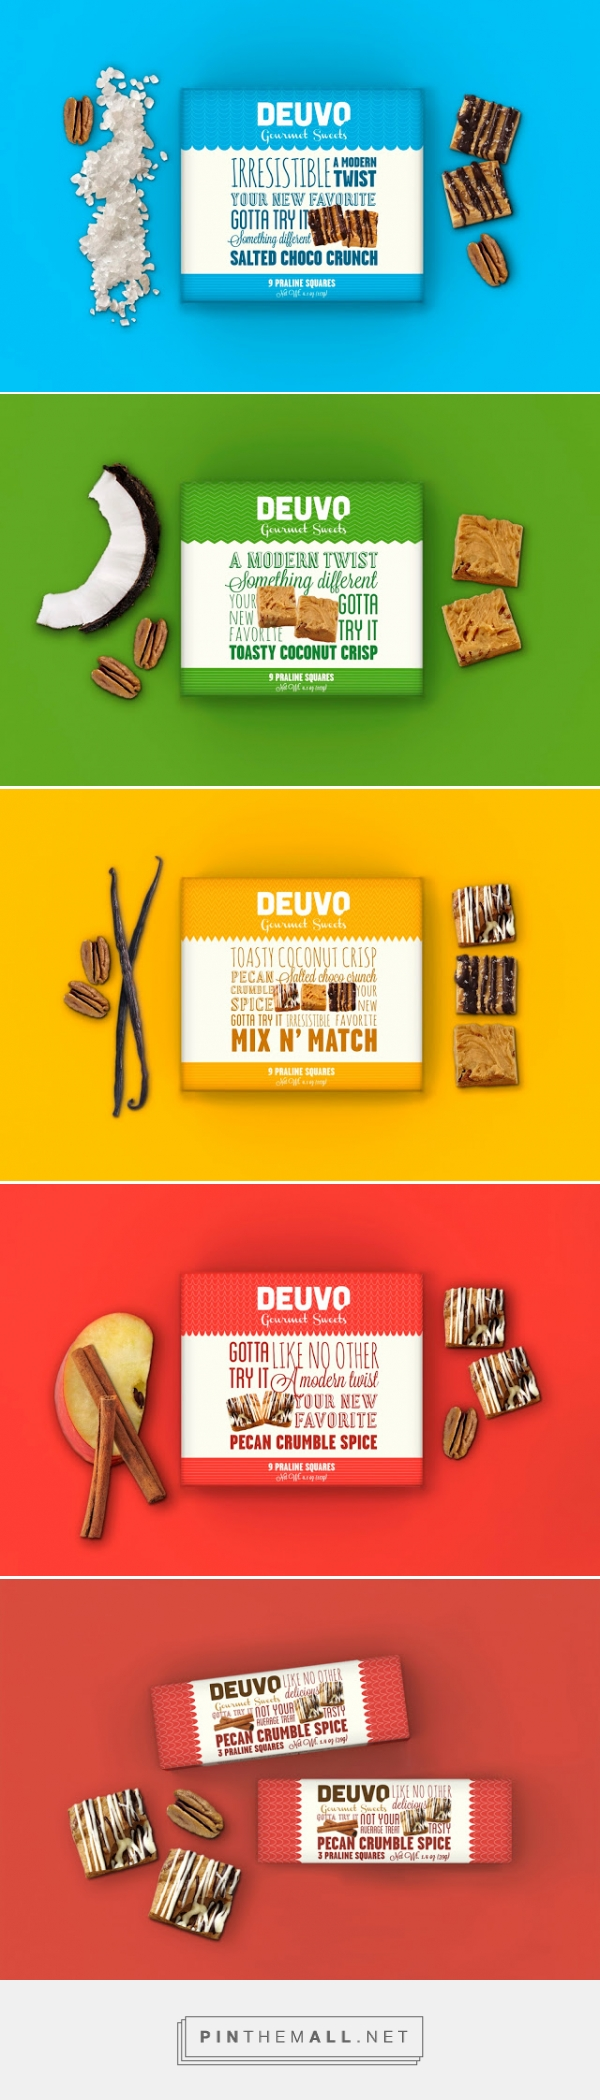 Deuvo gourmet sweets by Beatrice Menis and Mara Rodriguez. Pin curated by SFields99. #packaging